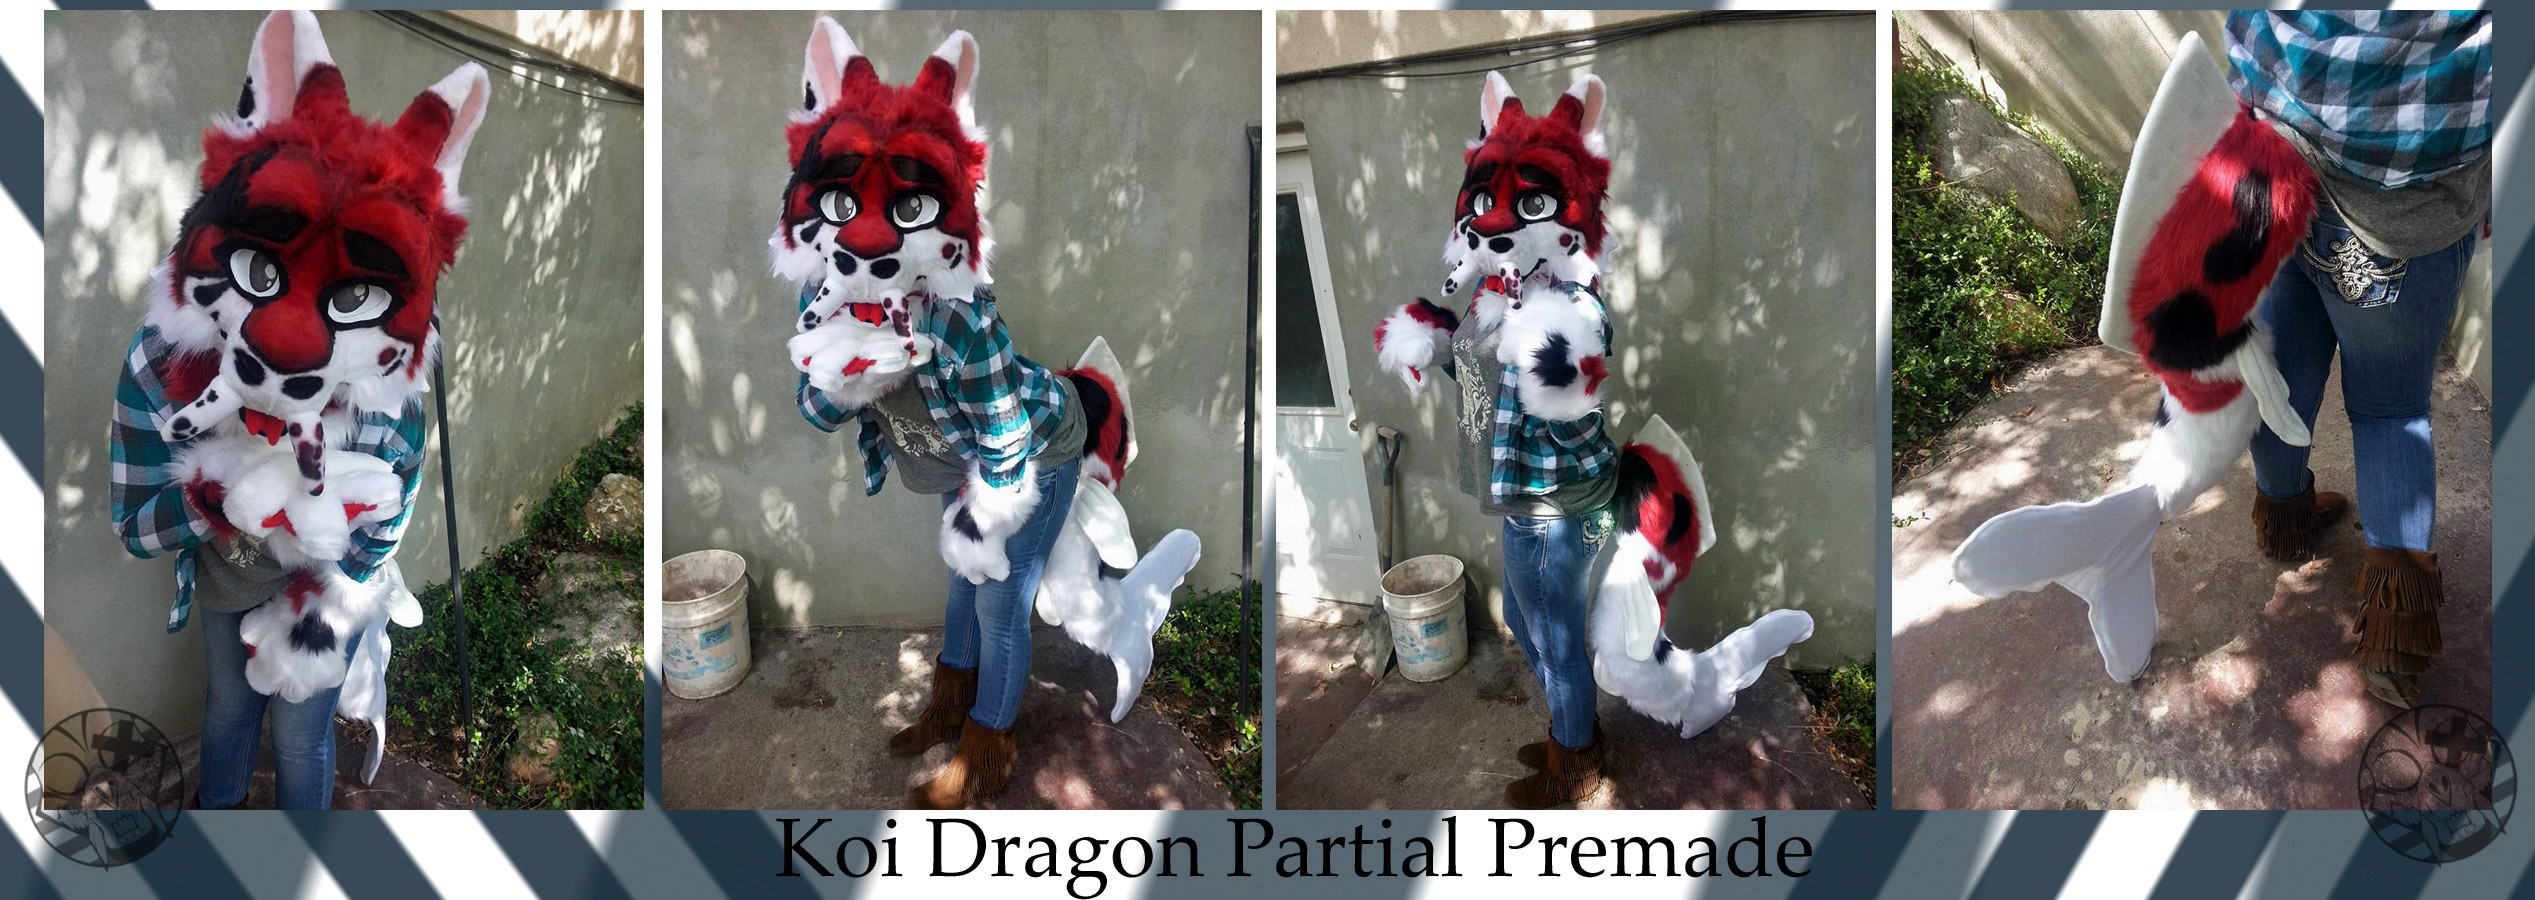 [OK] Koi Dragon Premade Partial by BioPelt